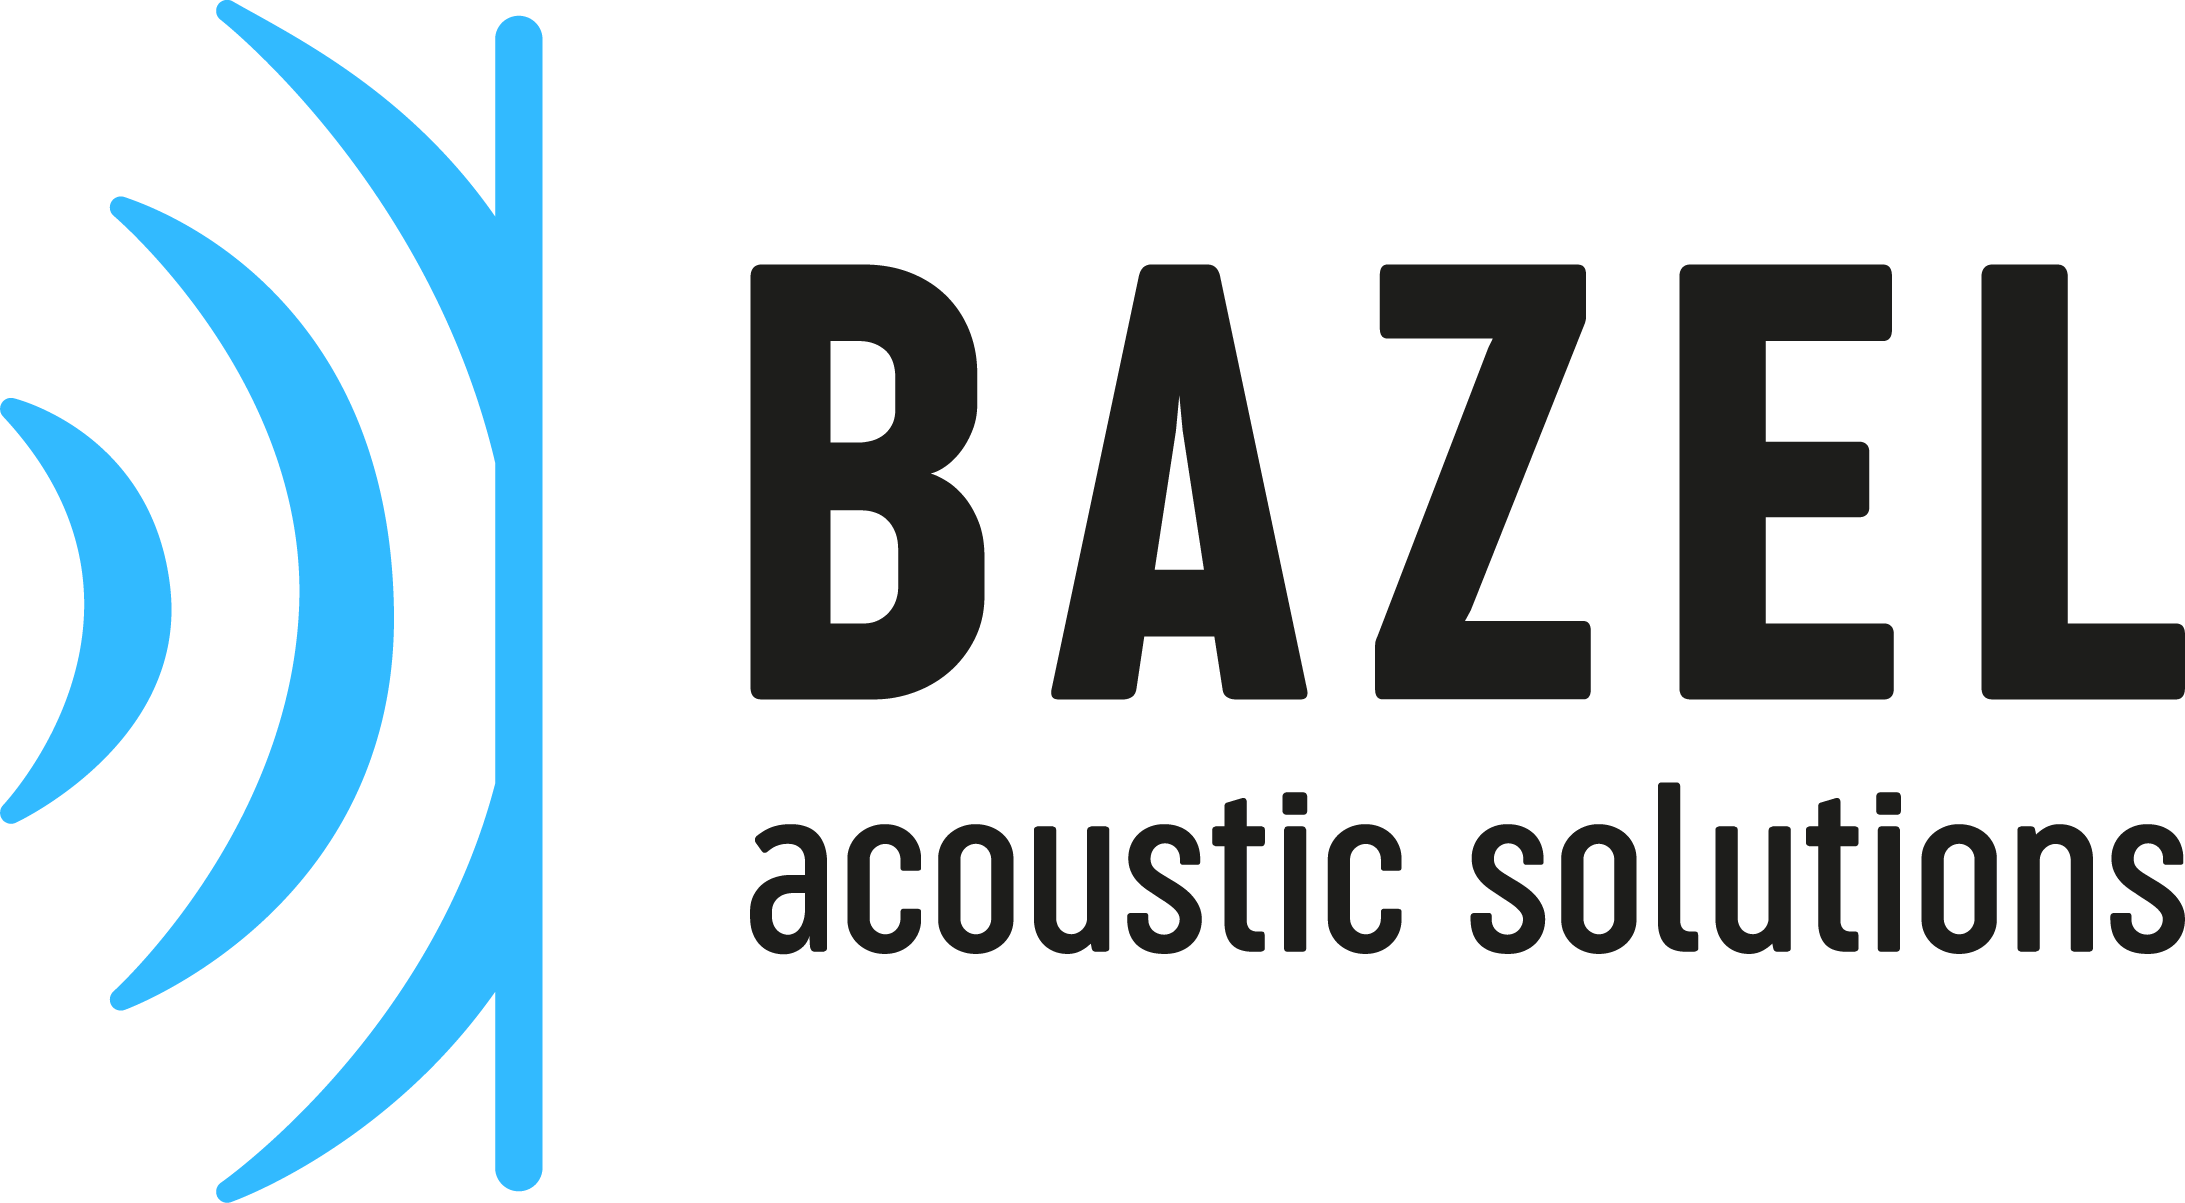 Bazel Acoustic Solutions